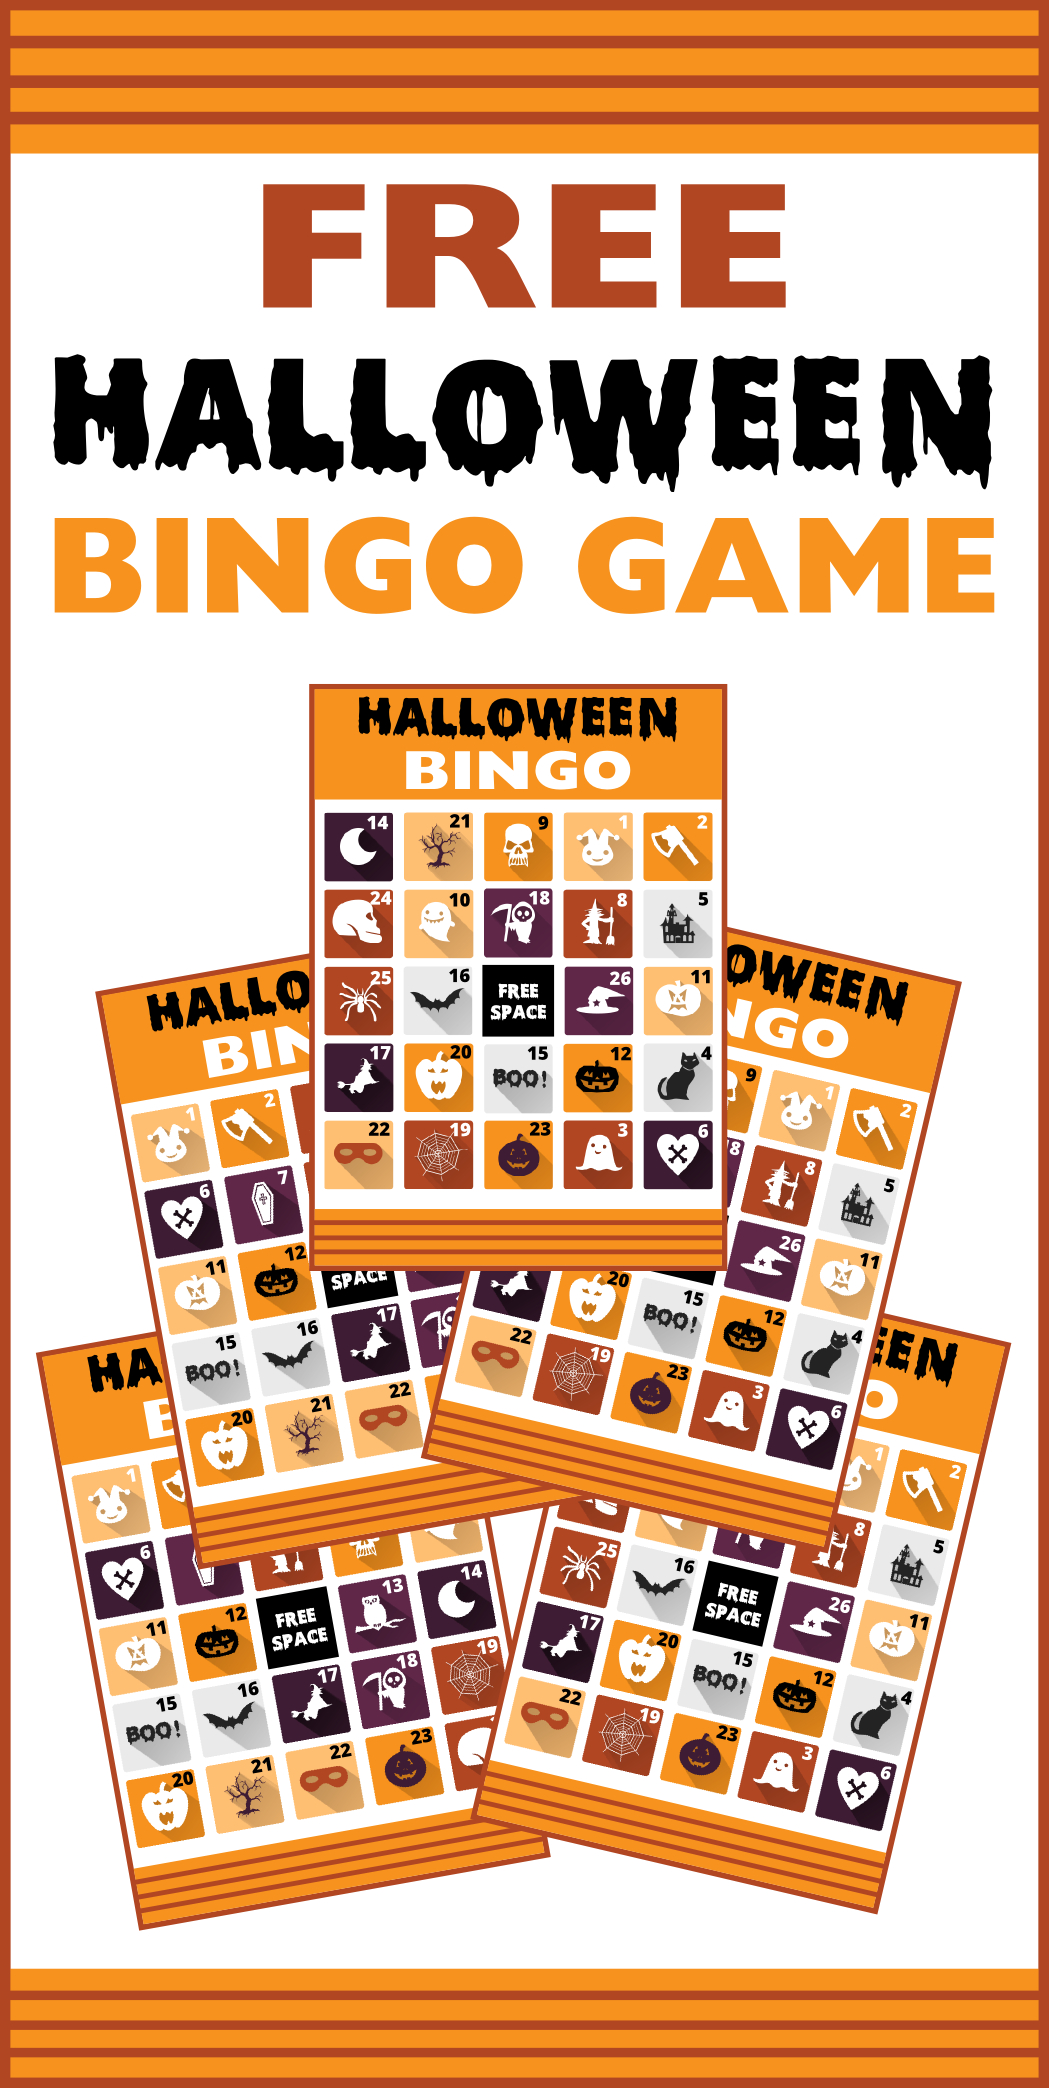 Free Printable Halloween Bingo Cards | Catch My Party - Free Printable Halloween Bingo